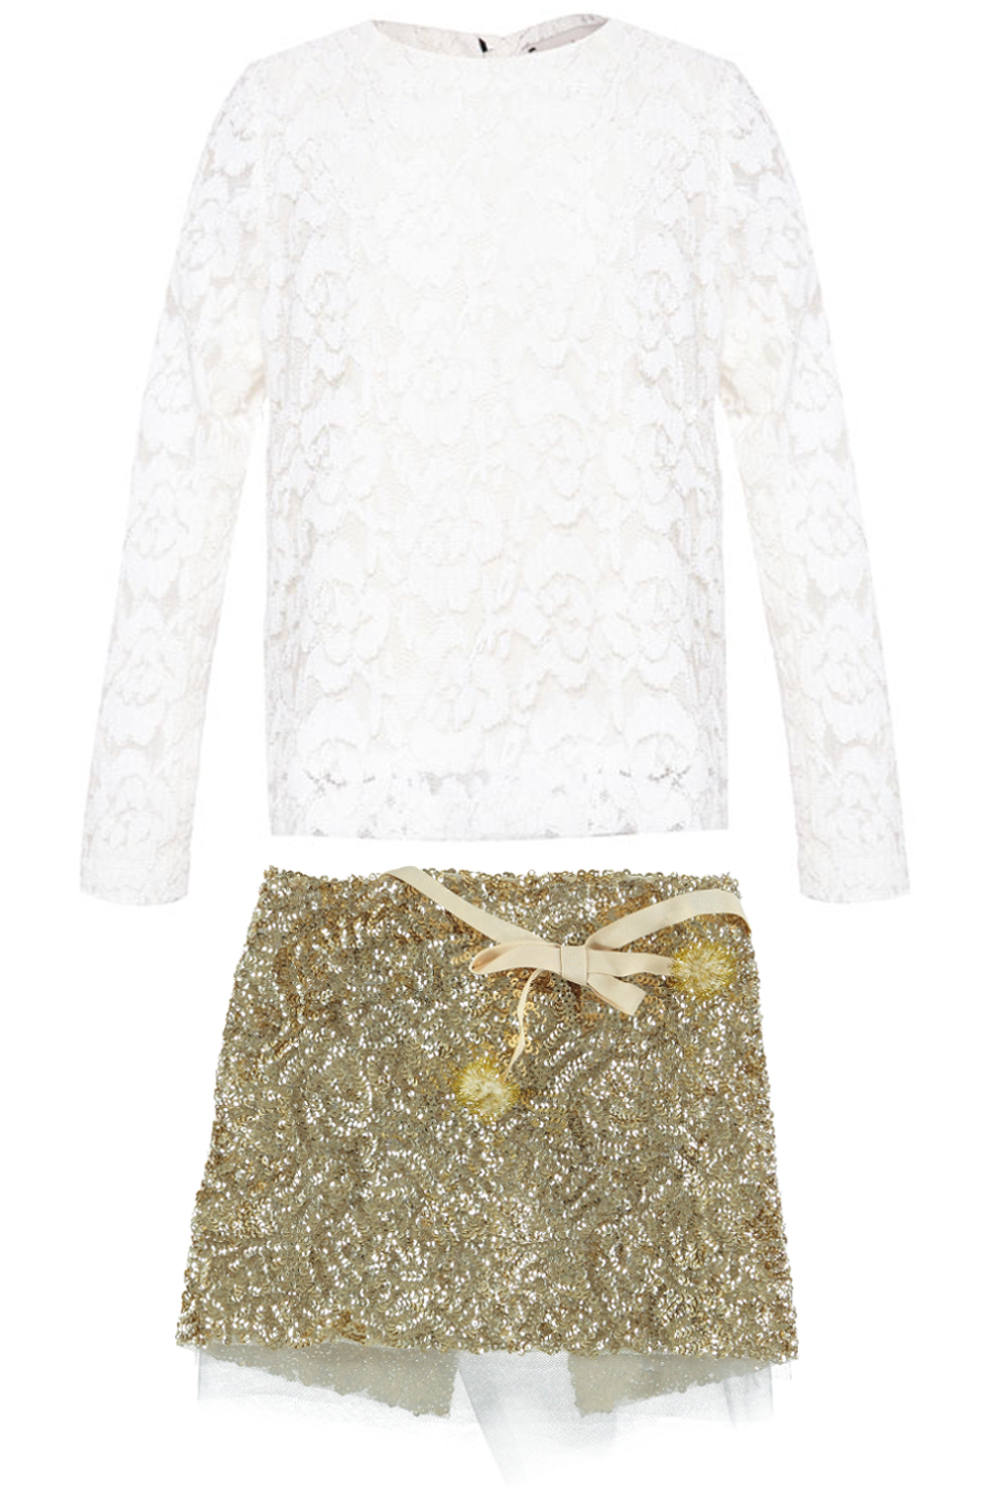 Shan and Toad winter 2014, white blouse with gold sequins skirt